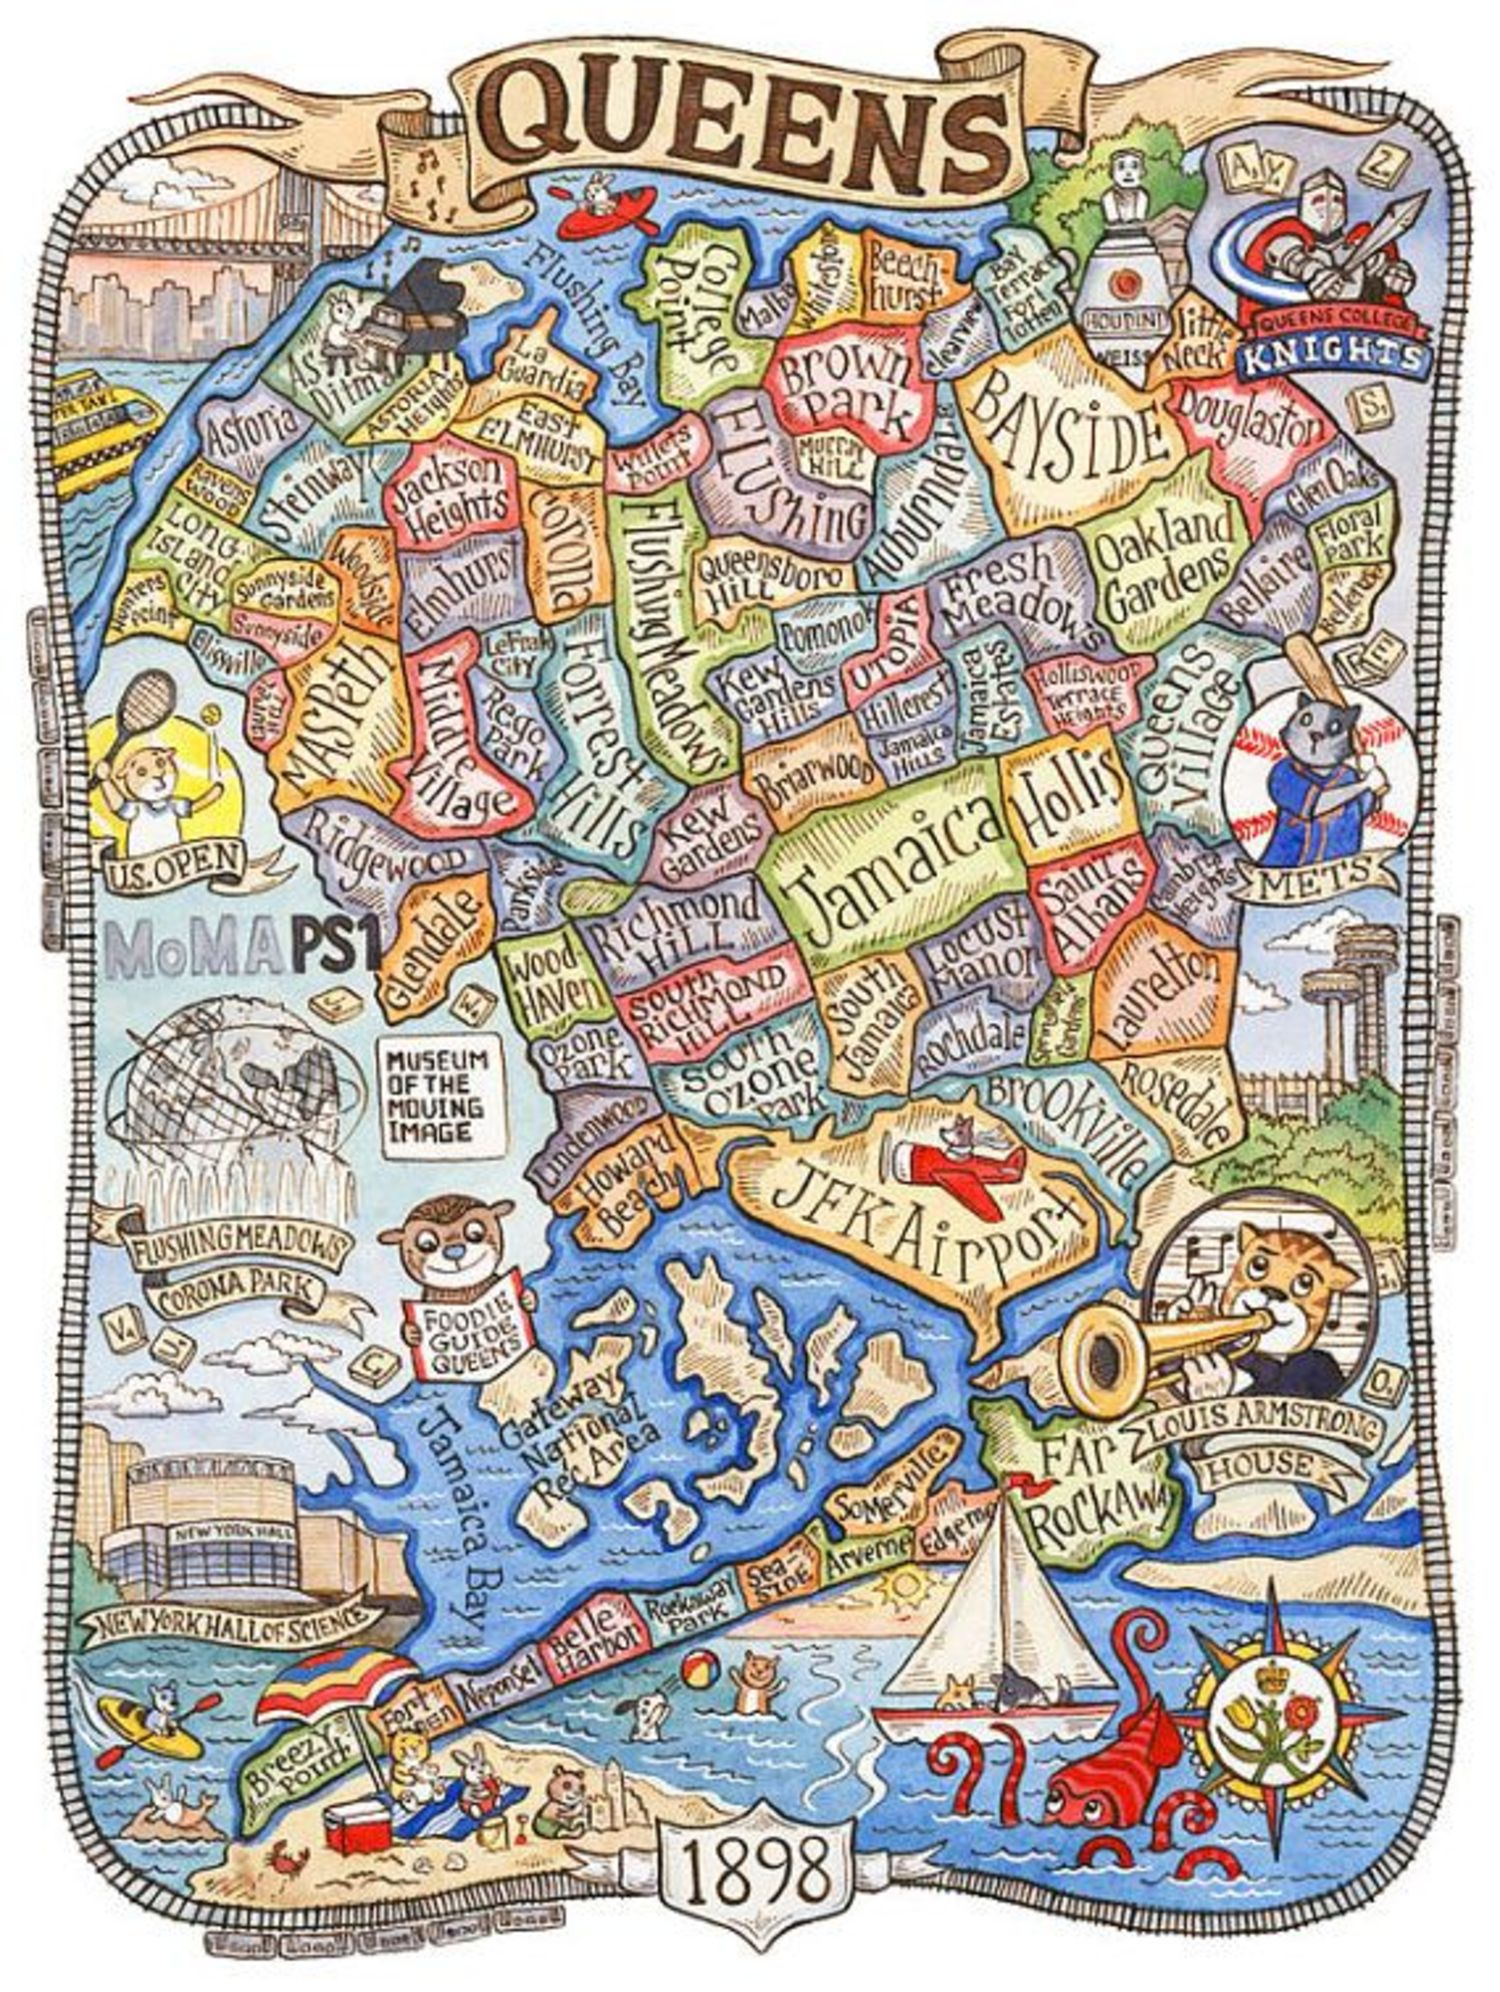 this cartoonish map of queens actually represents local